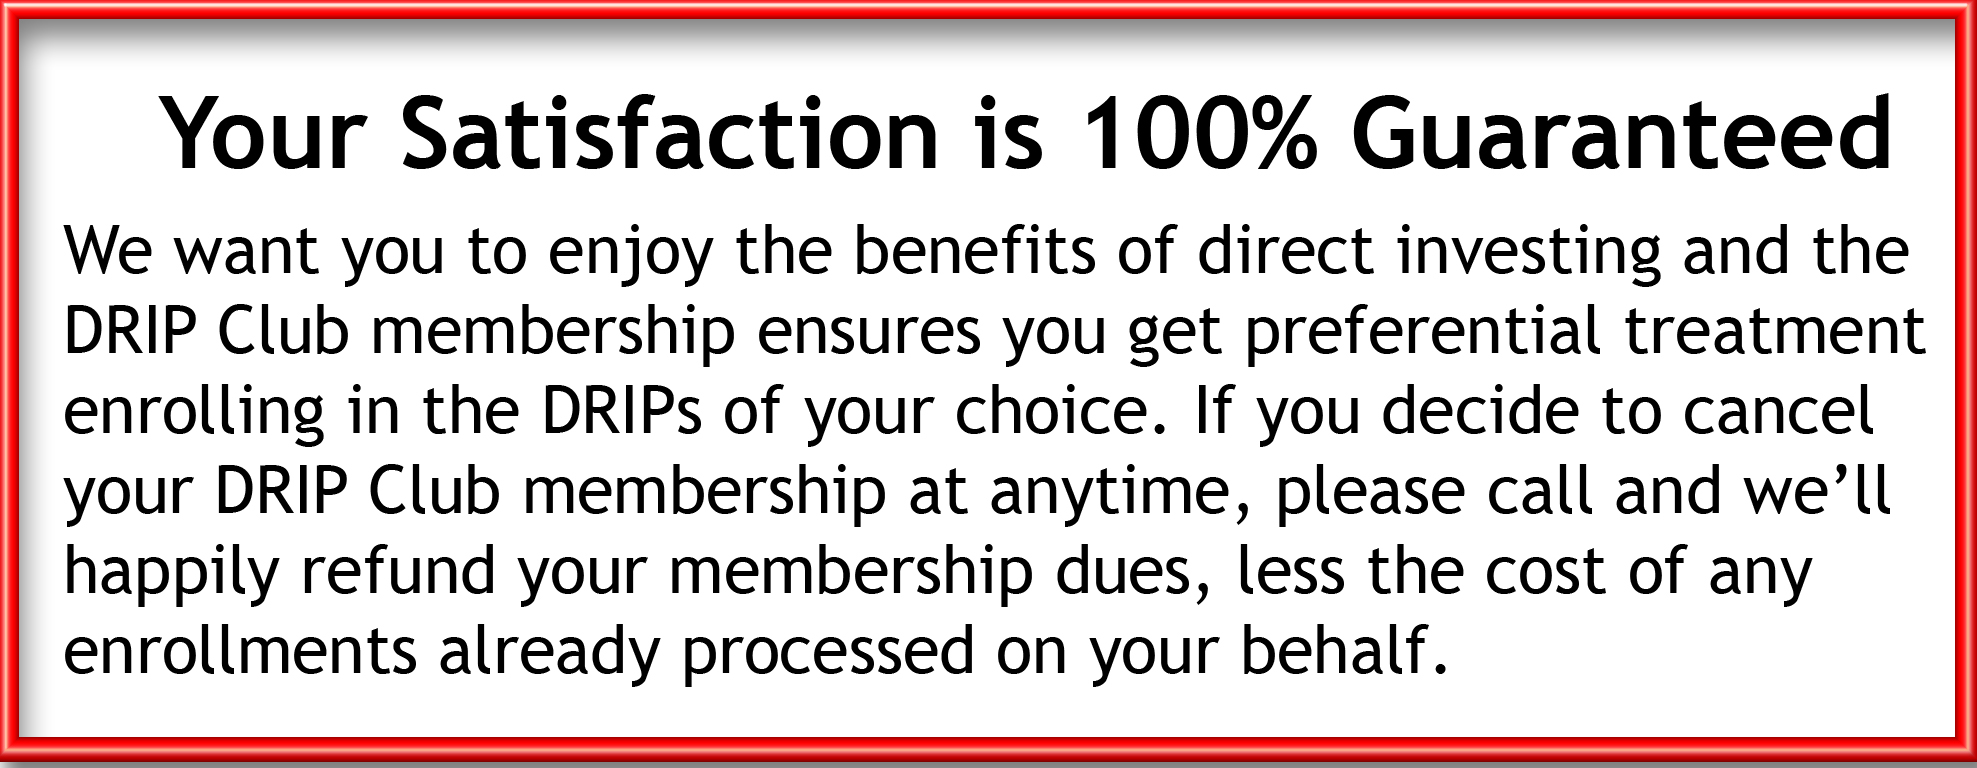 Directinvesting drip club membership got a question call us toll free 800 388 9993 biocorpaavc Images